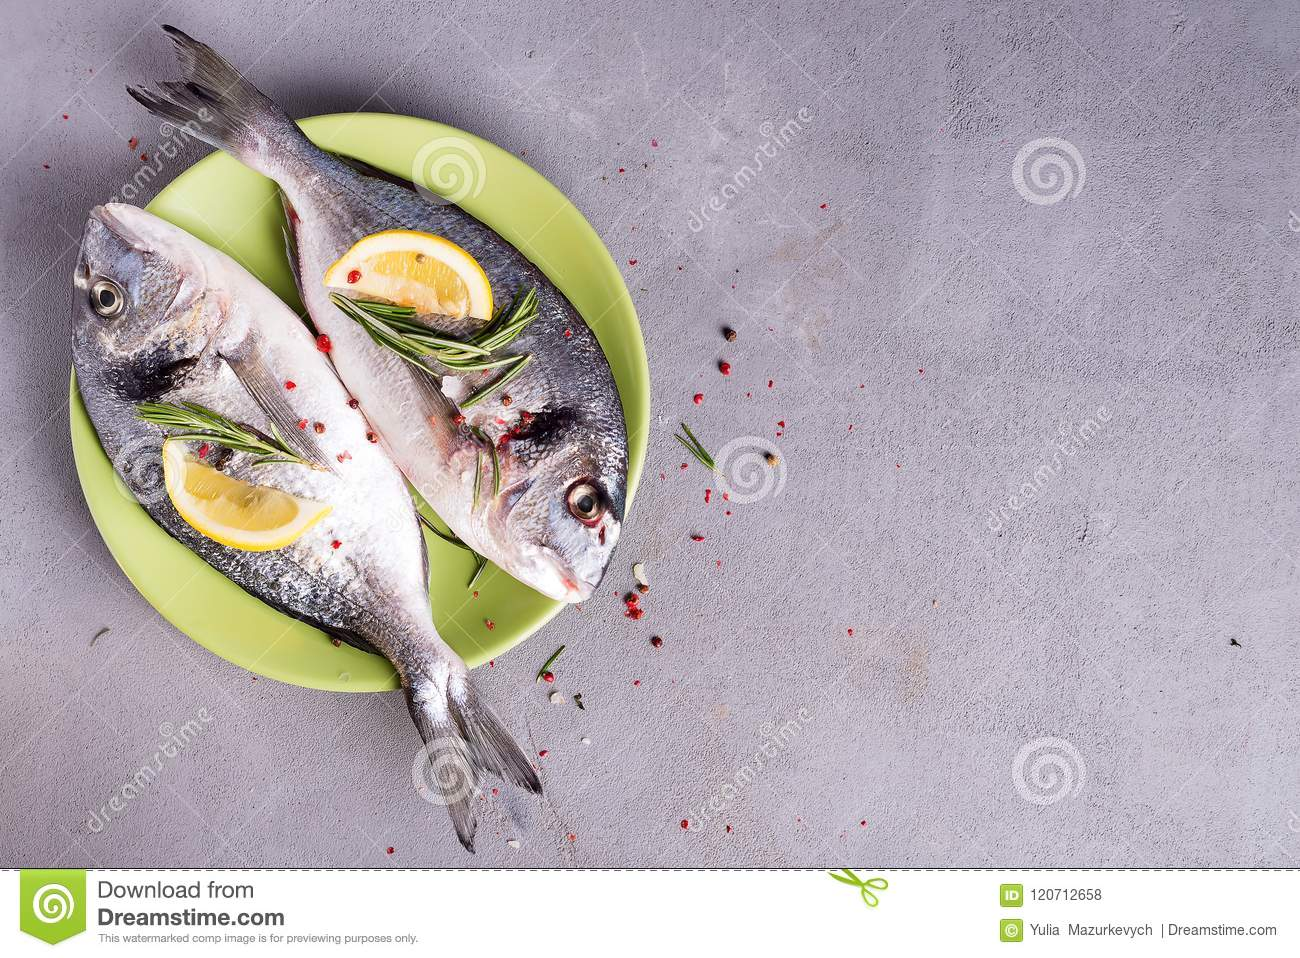 Fresh sea fish with spices and lemon ready for cooking on plate. Dorado or sea bream fish on stone background. Flat lay